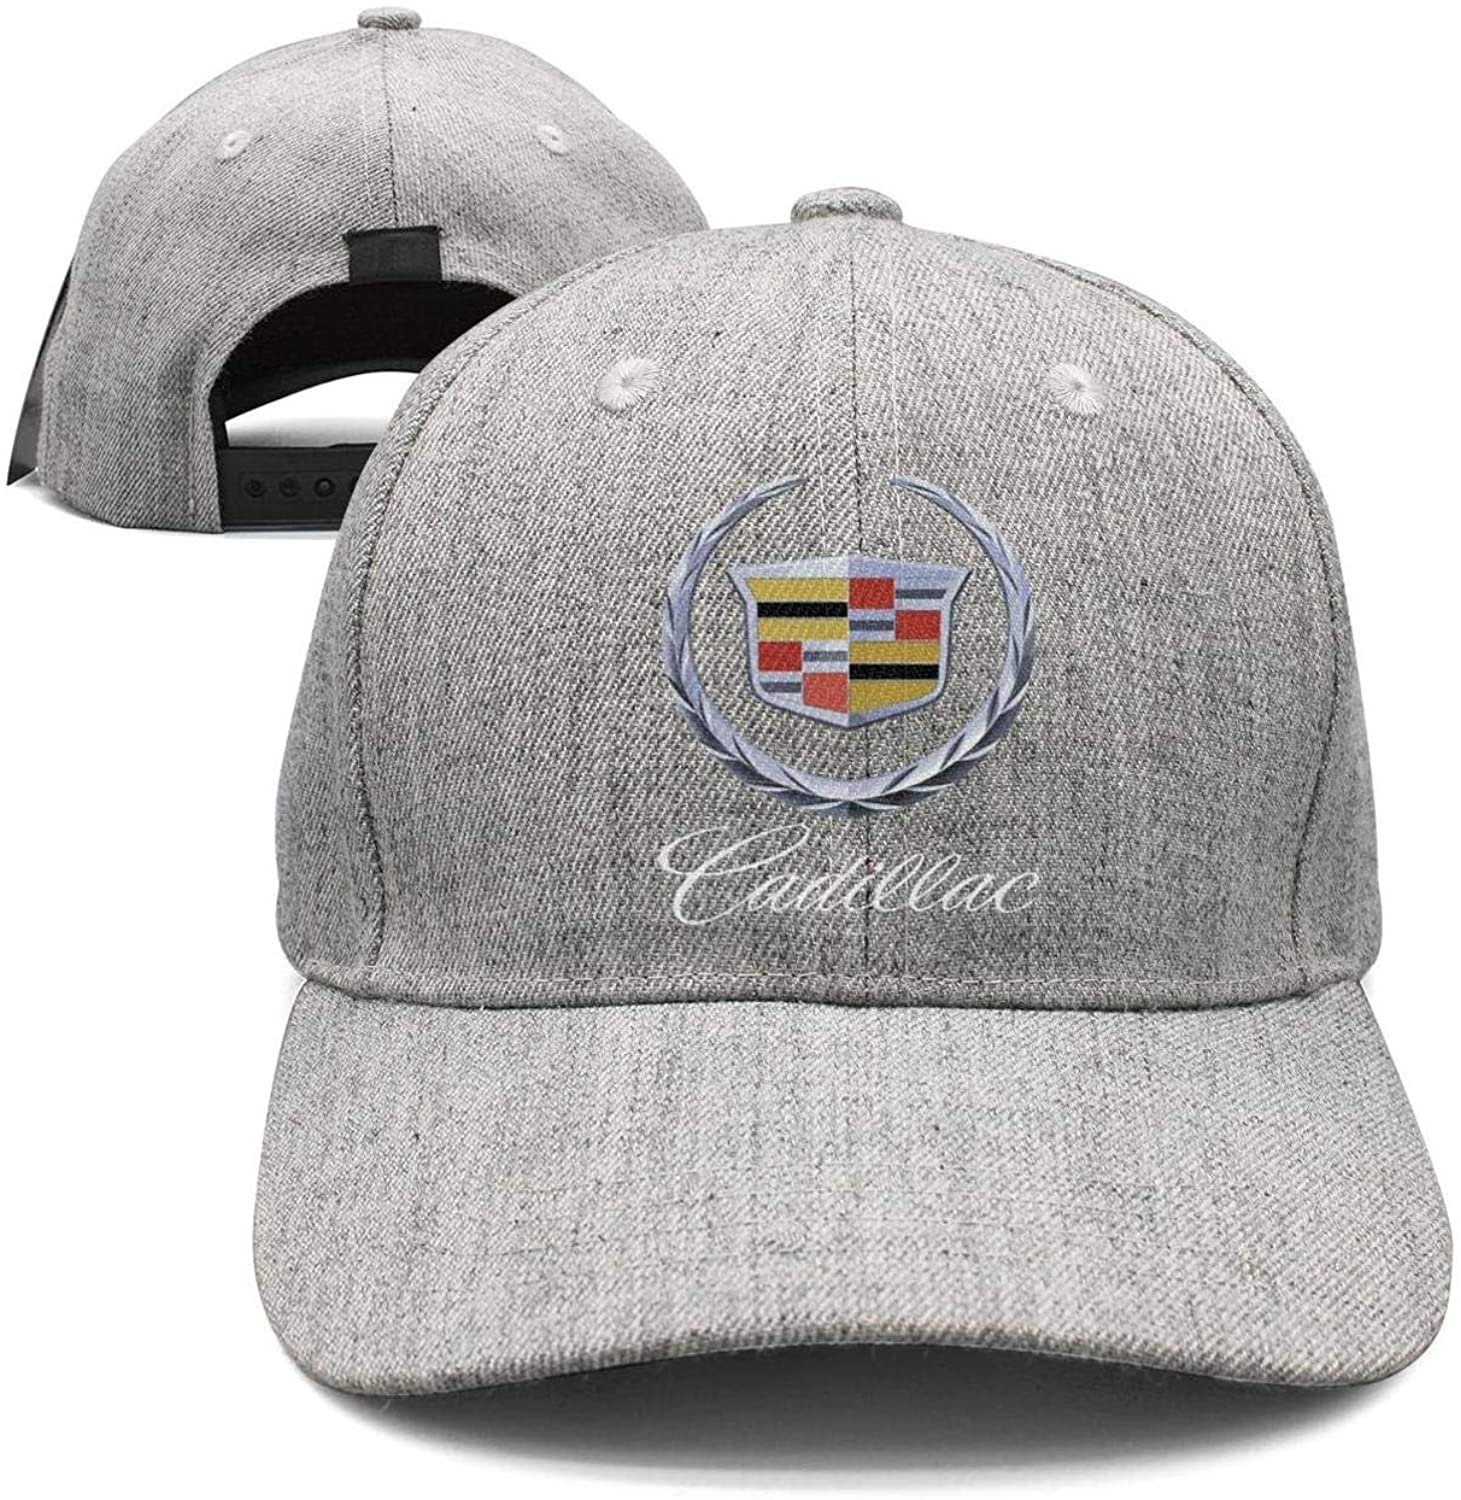 Cadillac-Logo- Unisex Youth Casual Flat-Brimmed Hat Outdoor Rock Cap